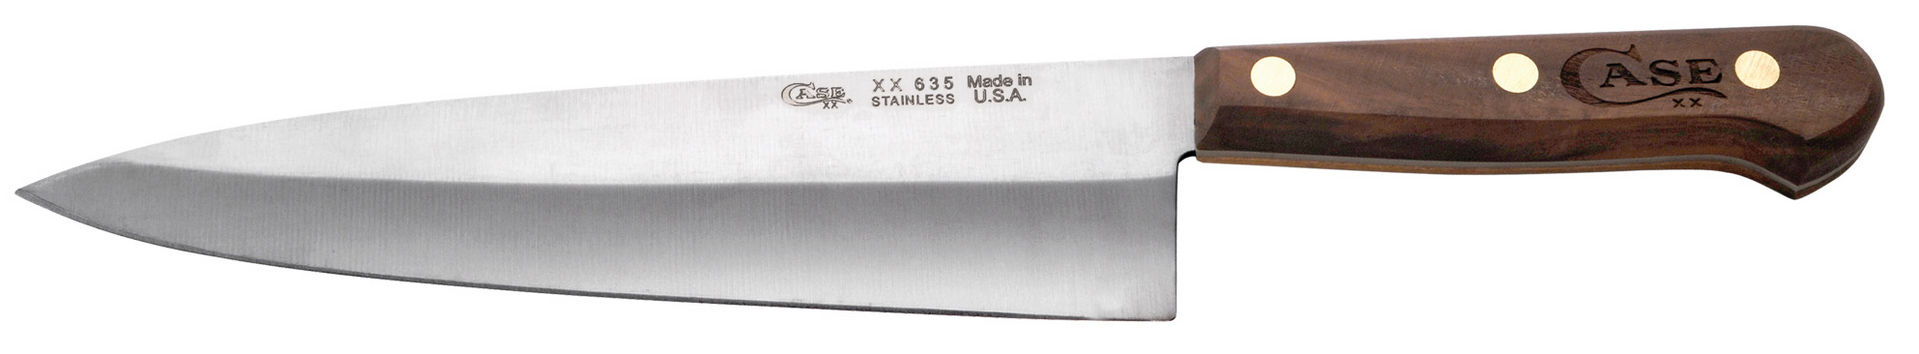 CASE XX KNIFE 7316 8-INCH CHEF'S KNIFE